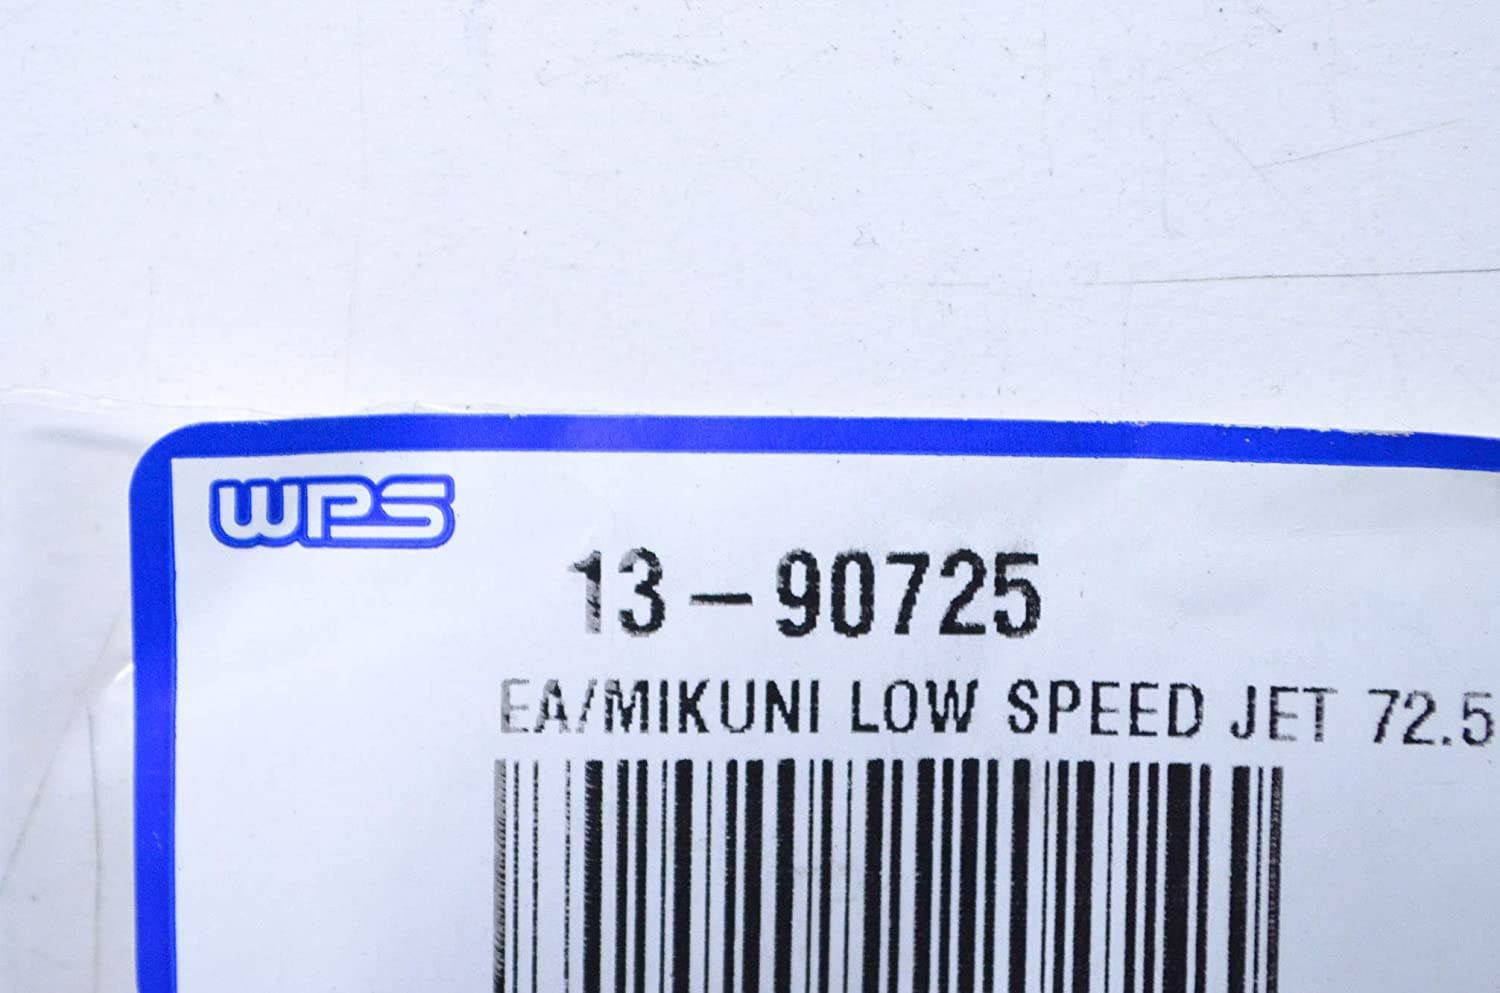 N100.606-72.5 each Mikuni n100.606-72.5 each low speed jet 72.5